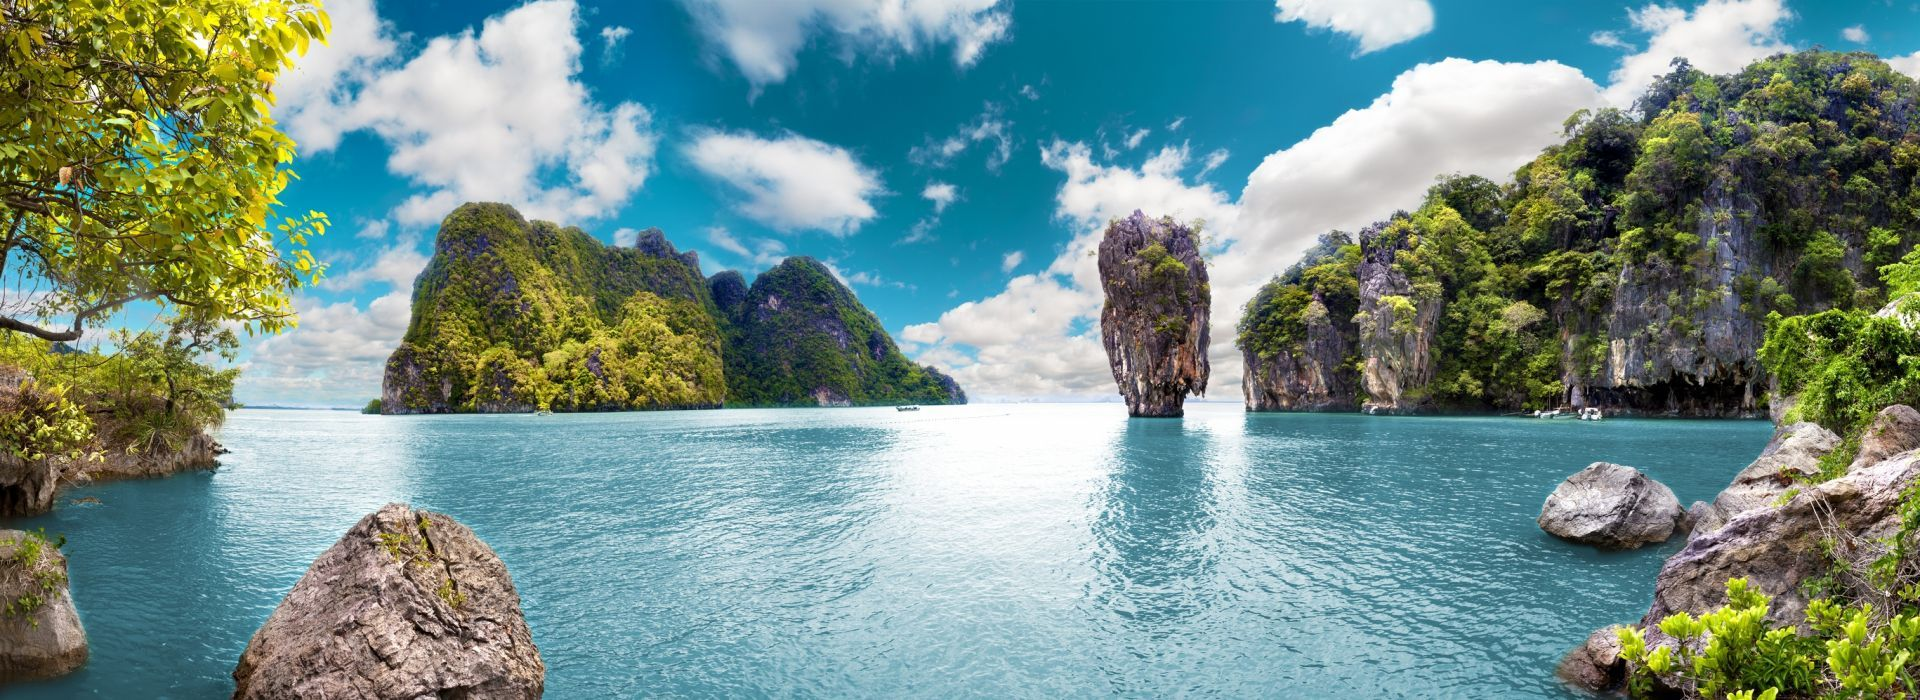 Rainforest and jungle visits Tours in Thailand